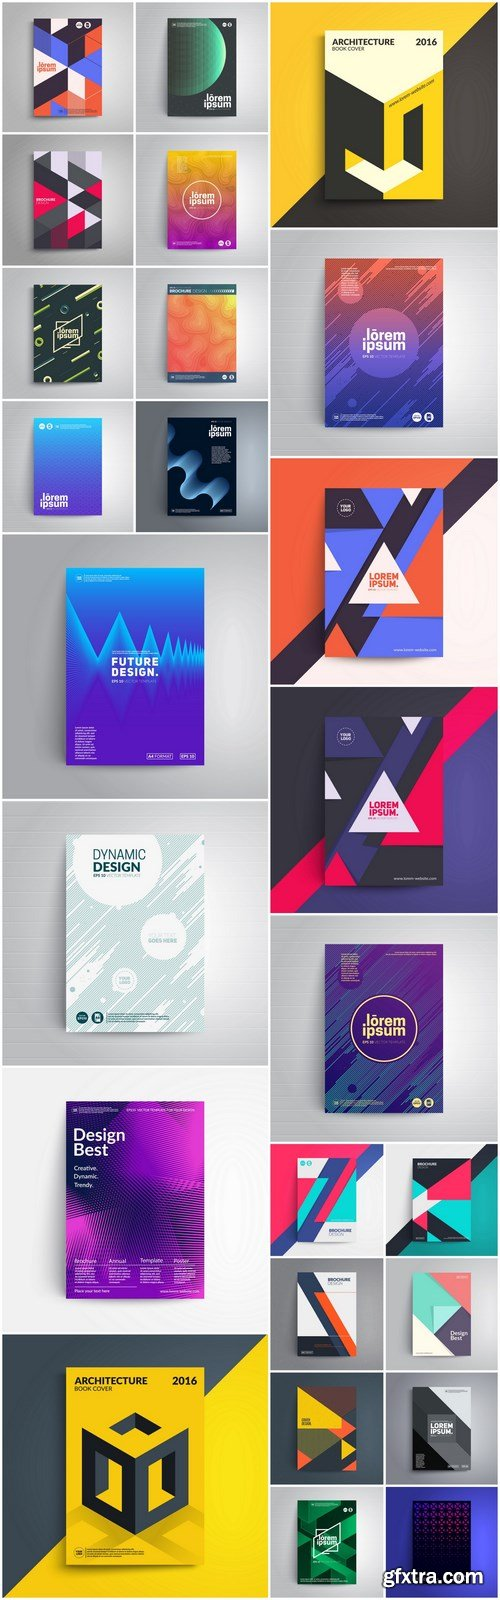 Abstract Cover Template - 25 Vector